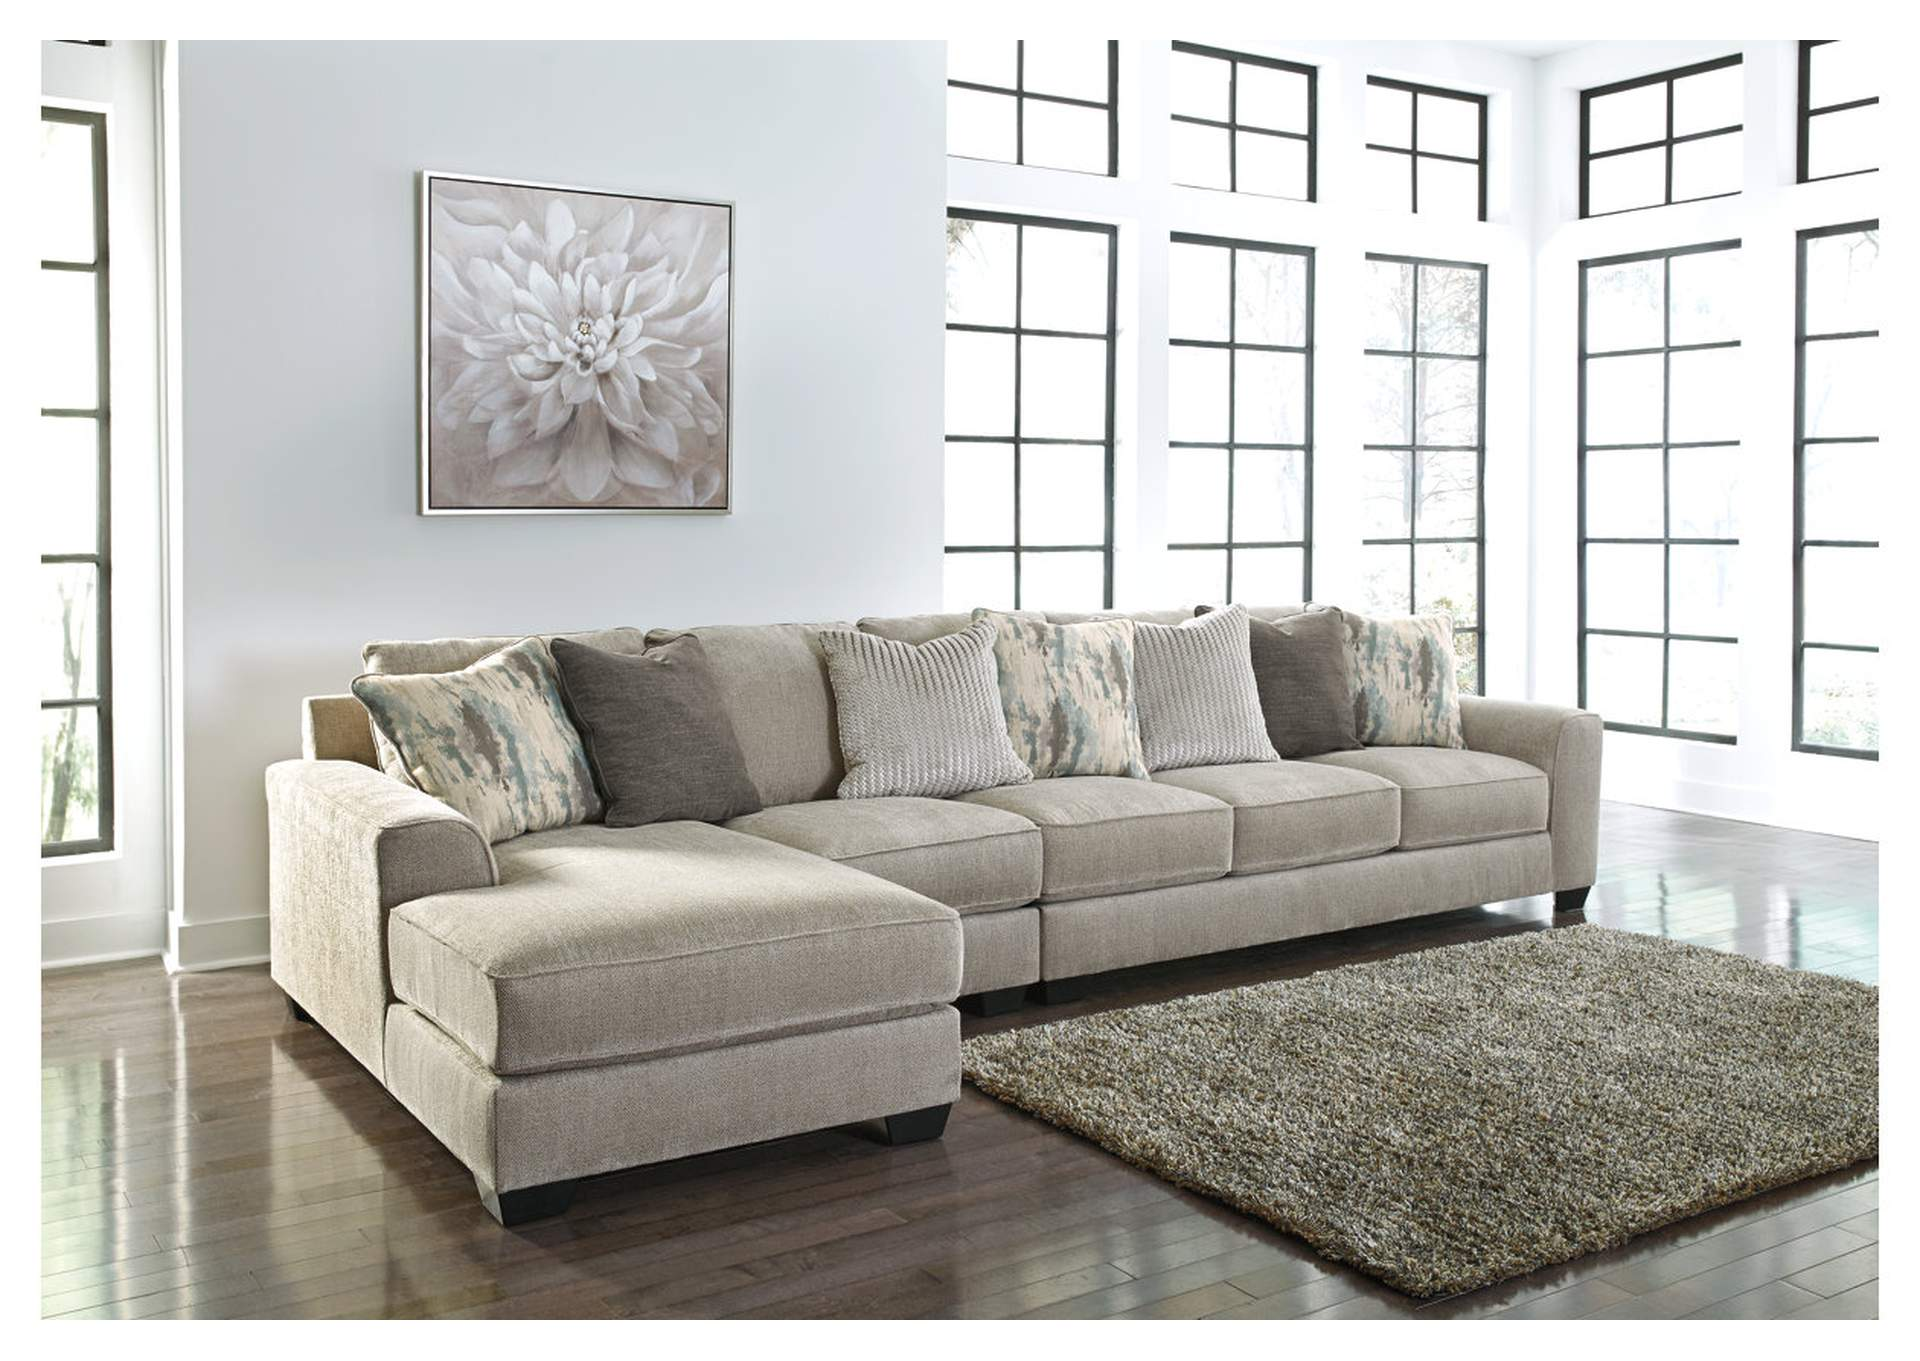 Ardsley Pewter 3 Piece LAF Chaise Sectional,Benchcraft